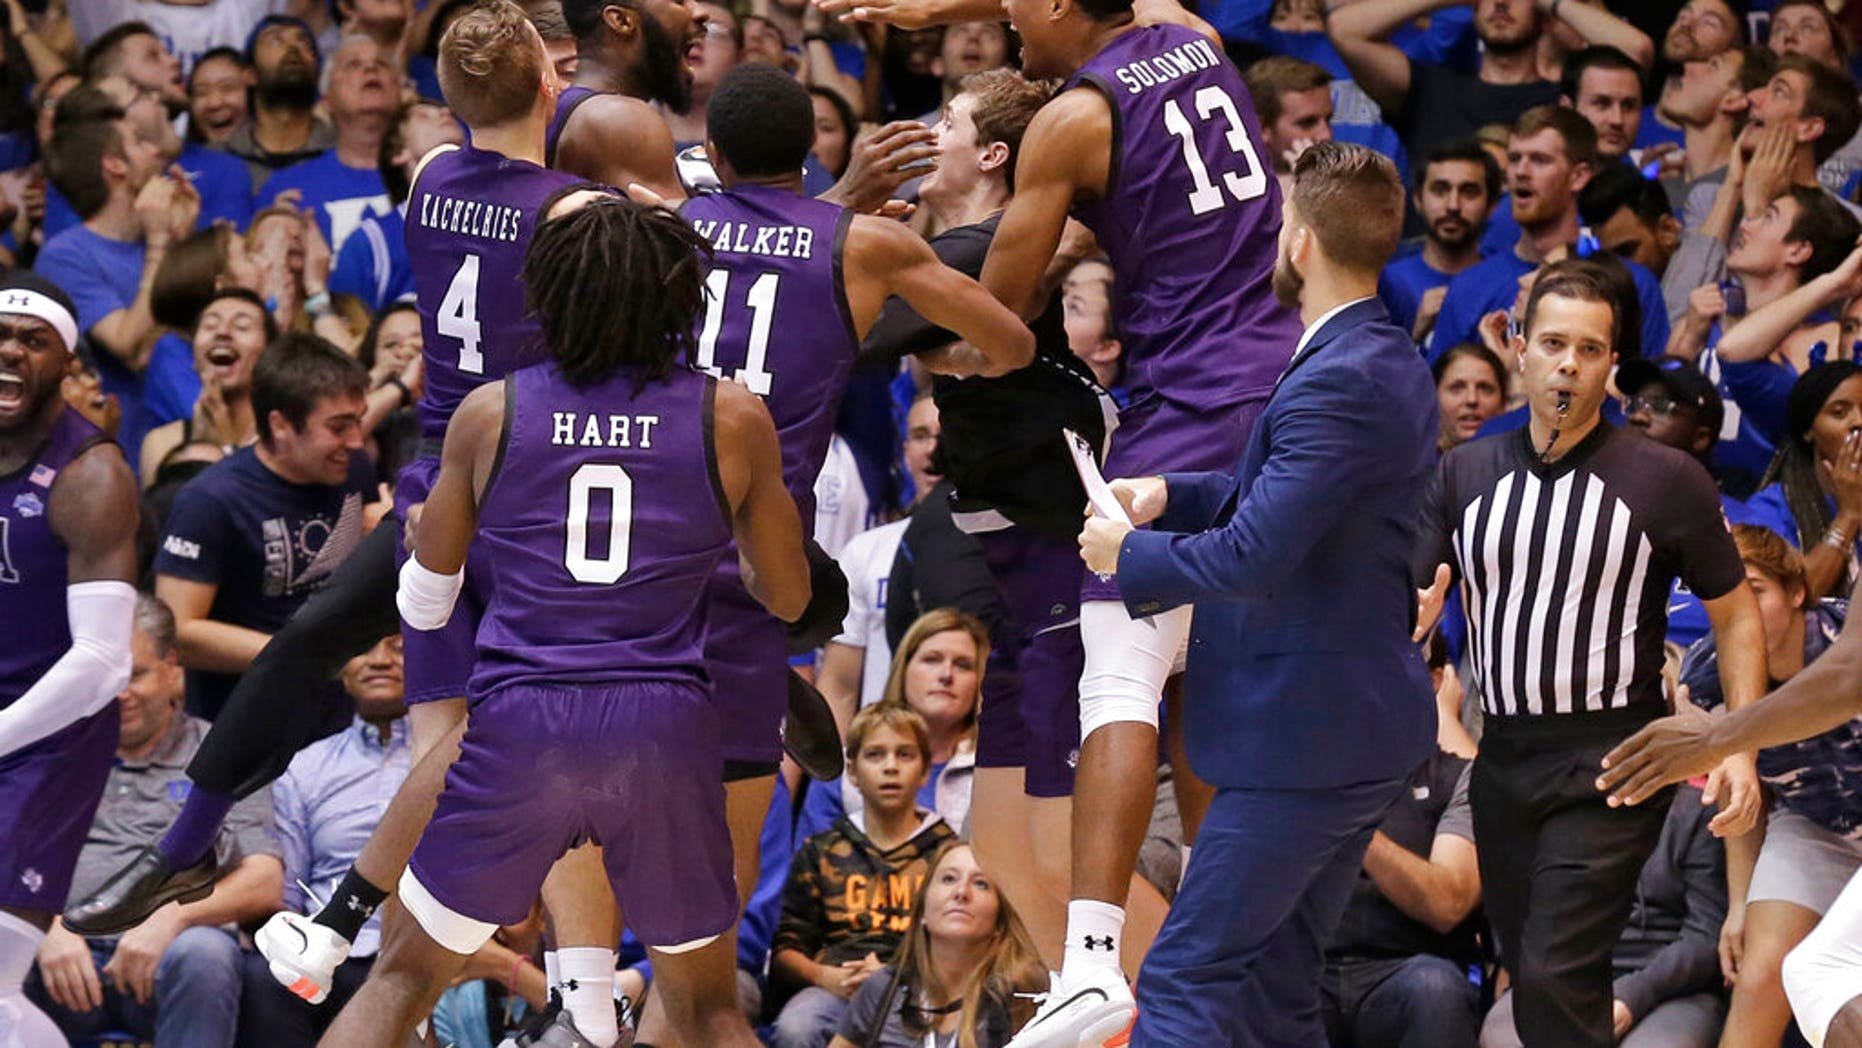 Political news  news politics  Trump news  democrats news  republican news Stephen F. Austin players celebrate the team's 85-83 overtime win over Duke in an NCAA college basketball game in Durham, N.C.